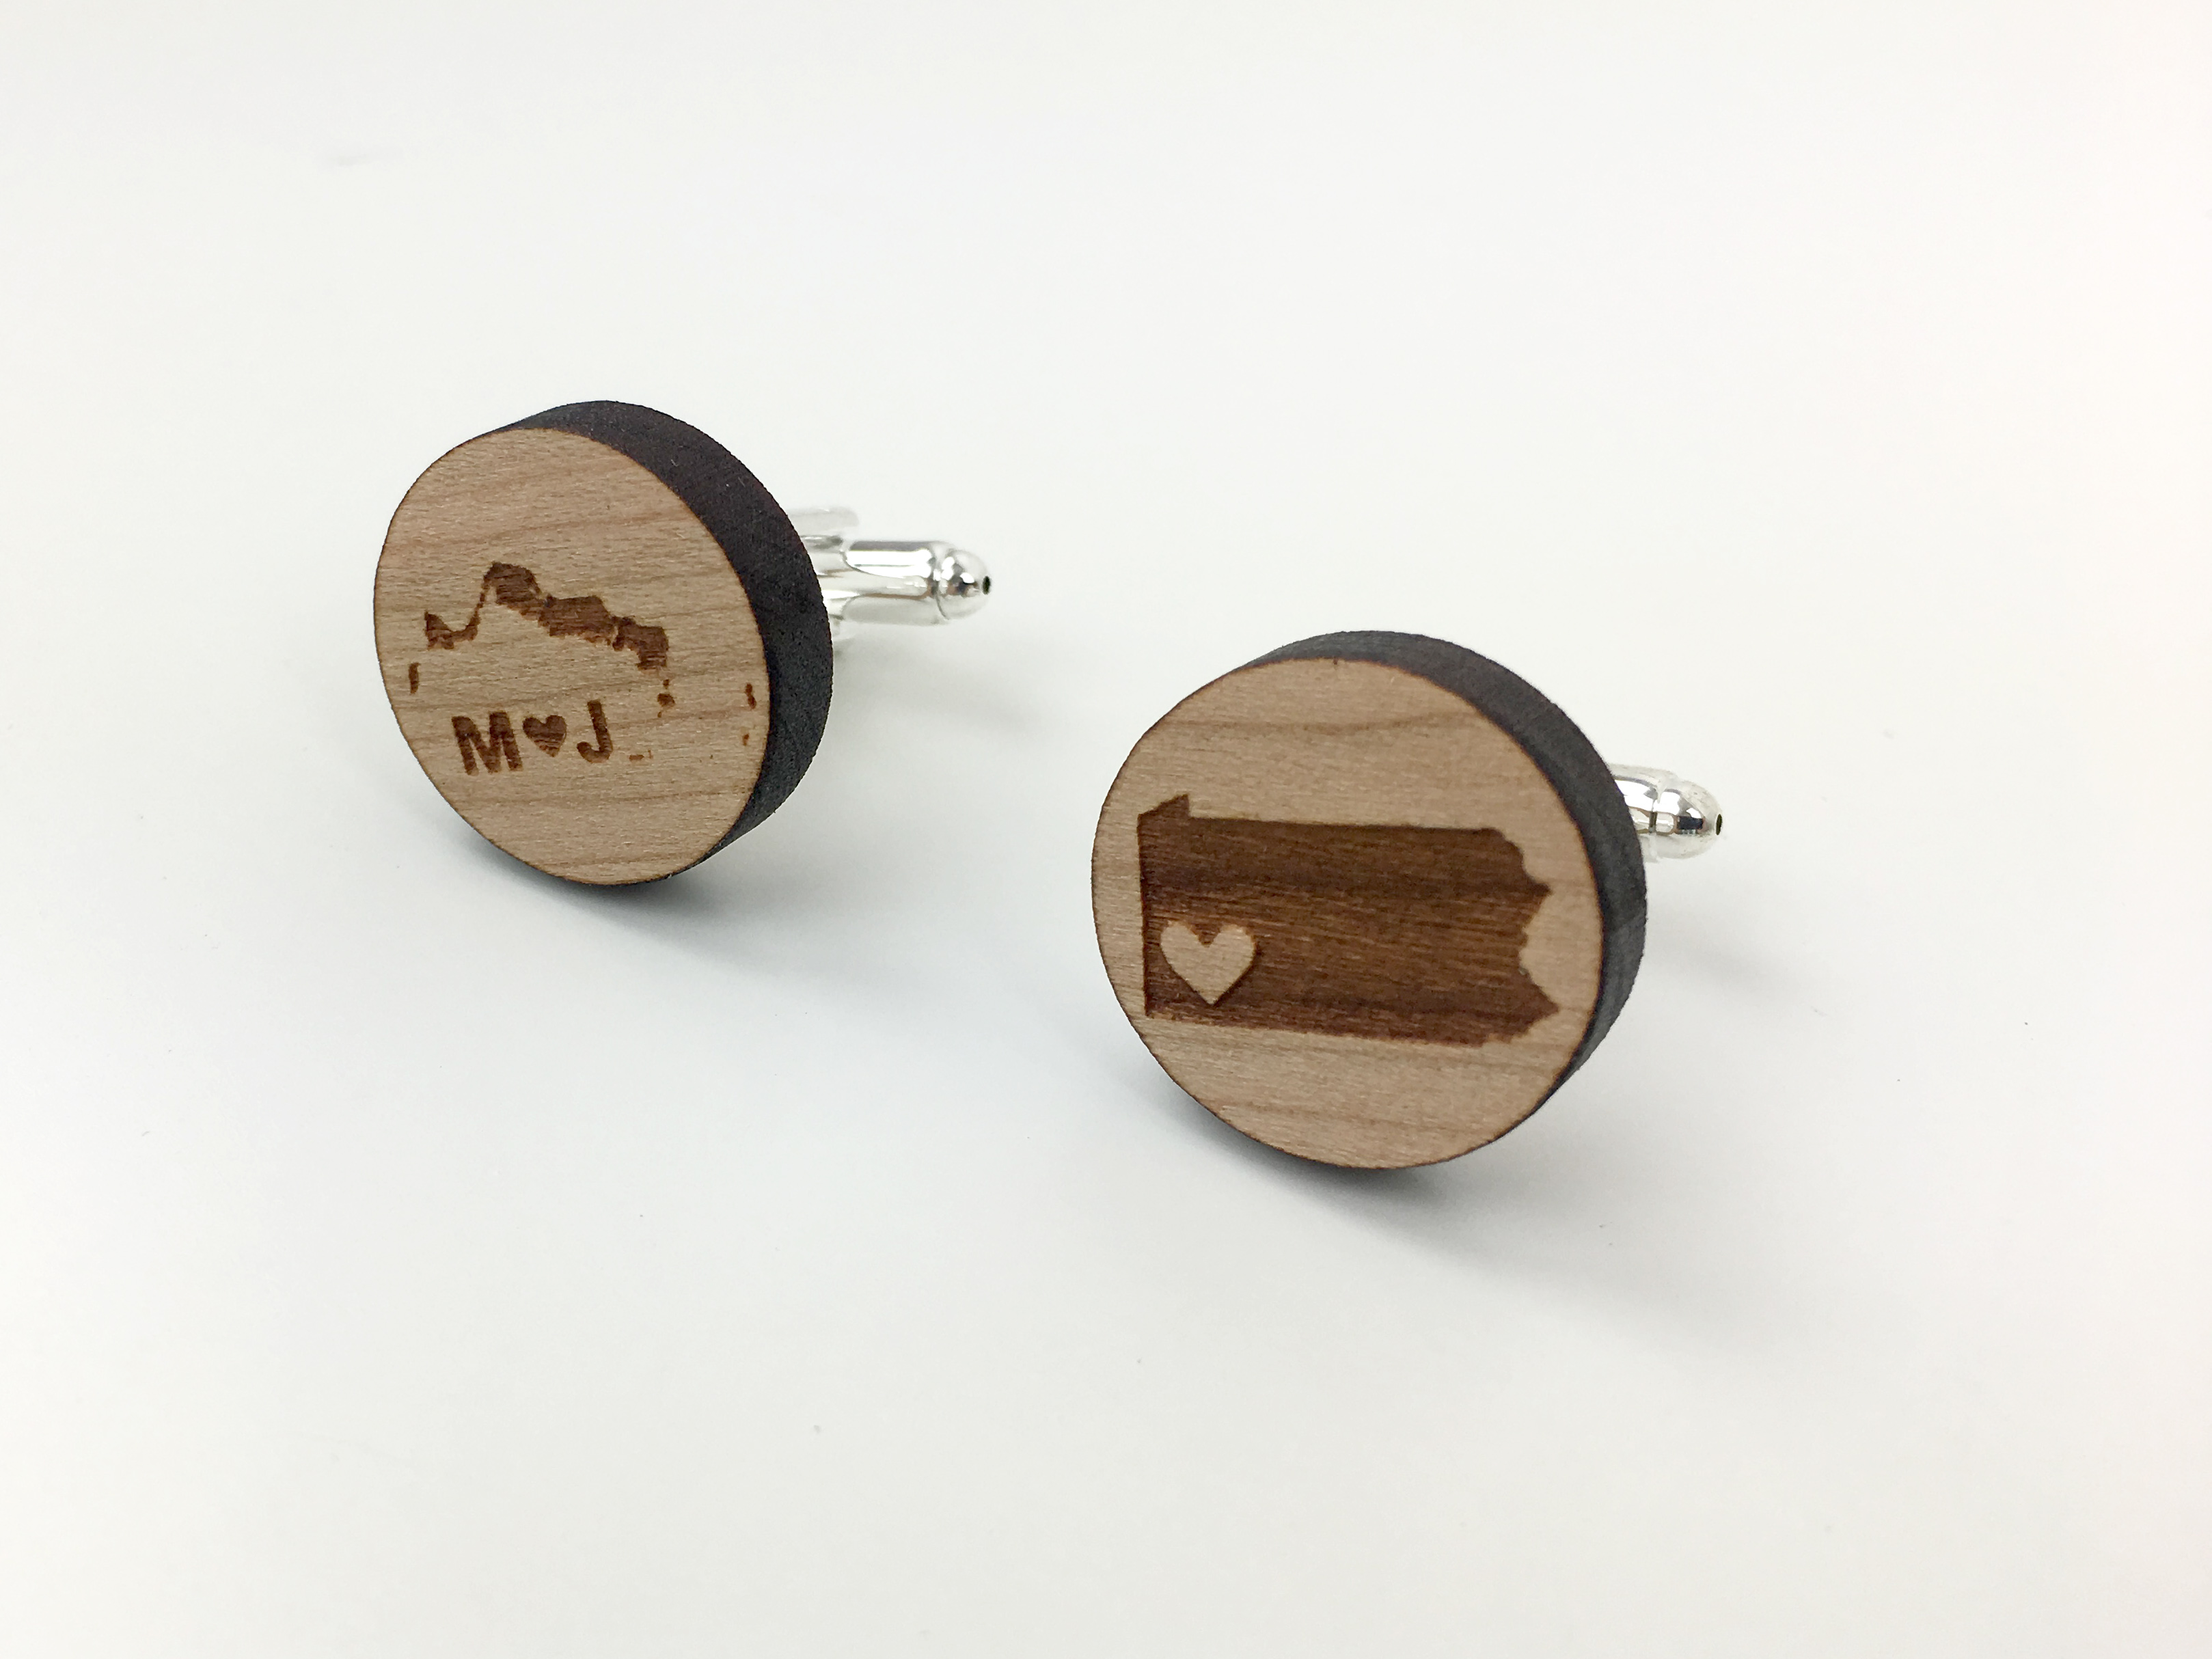 state silhouette cuff links